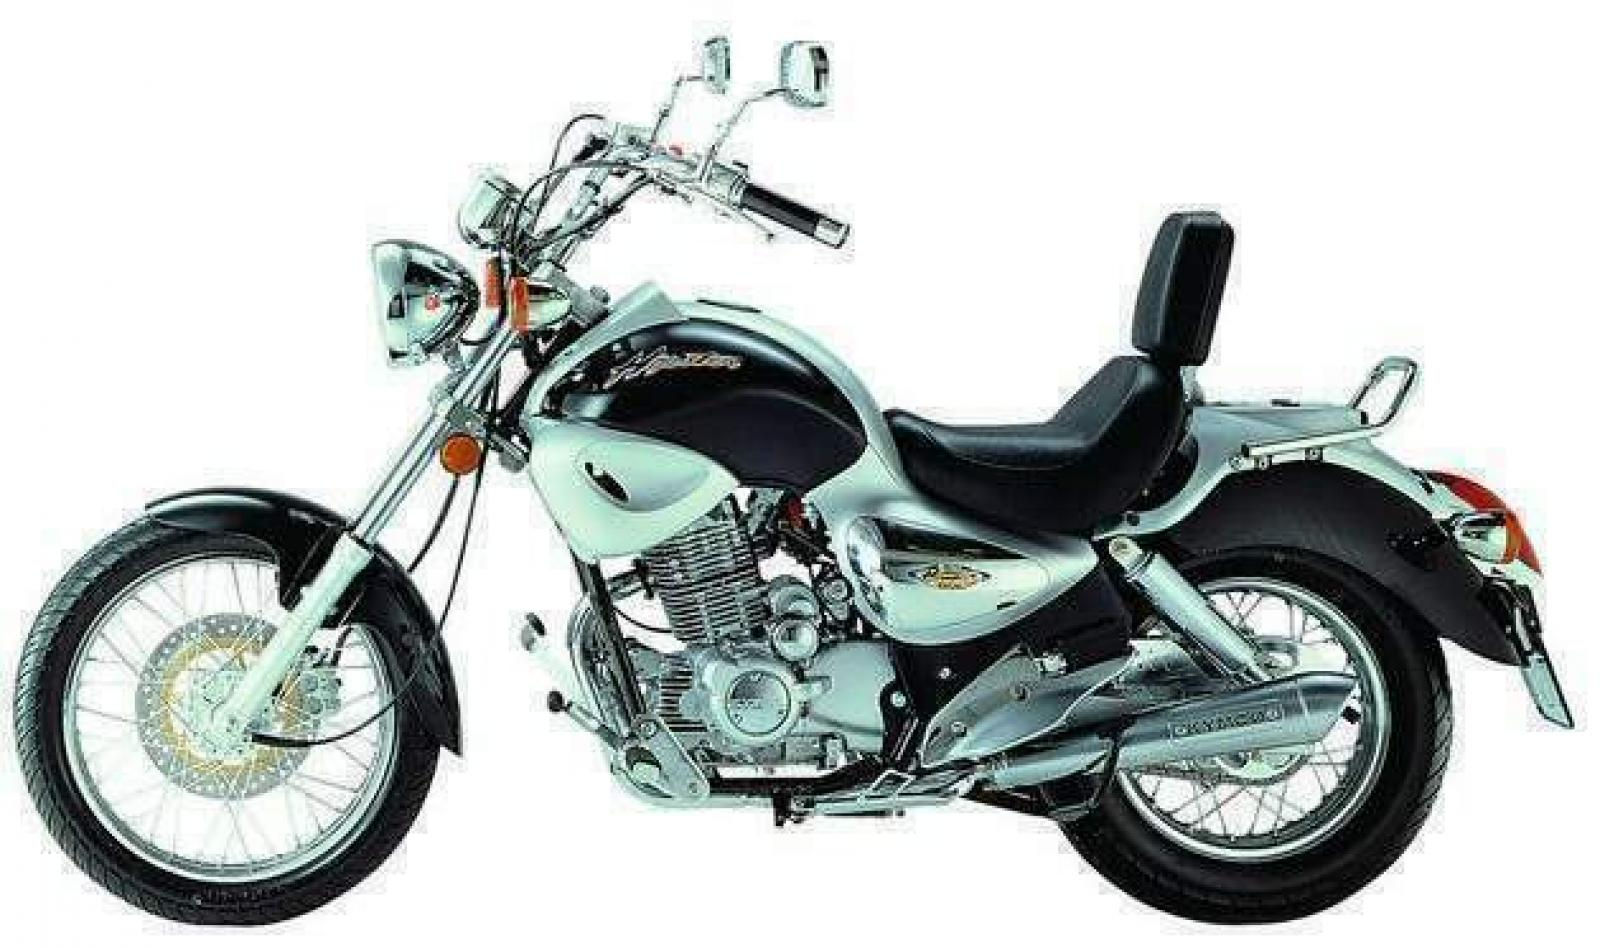 Kymco Hipster 125 2004 images #101539